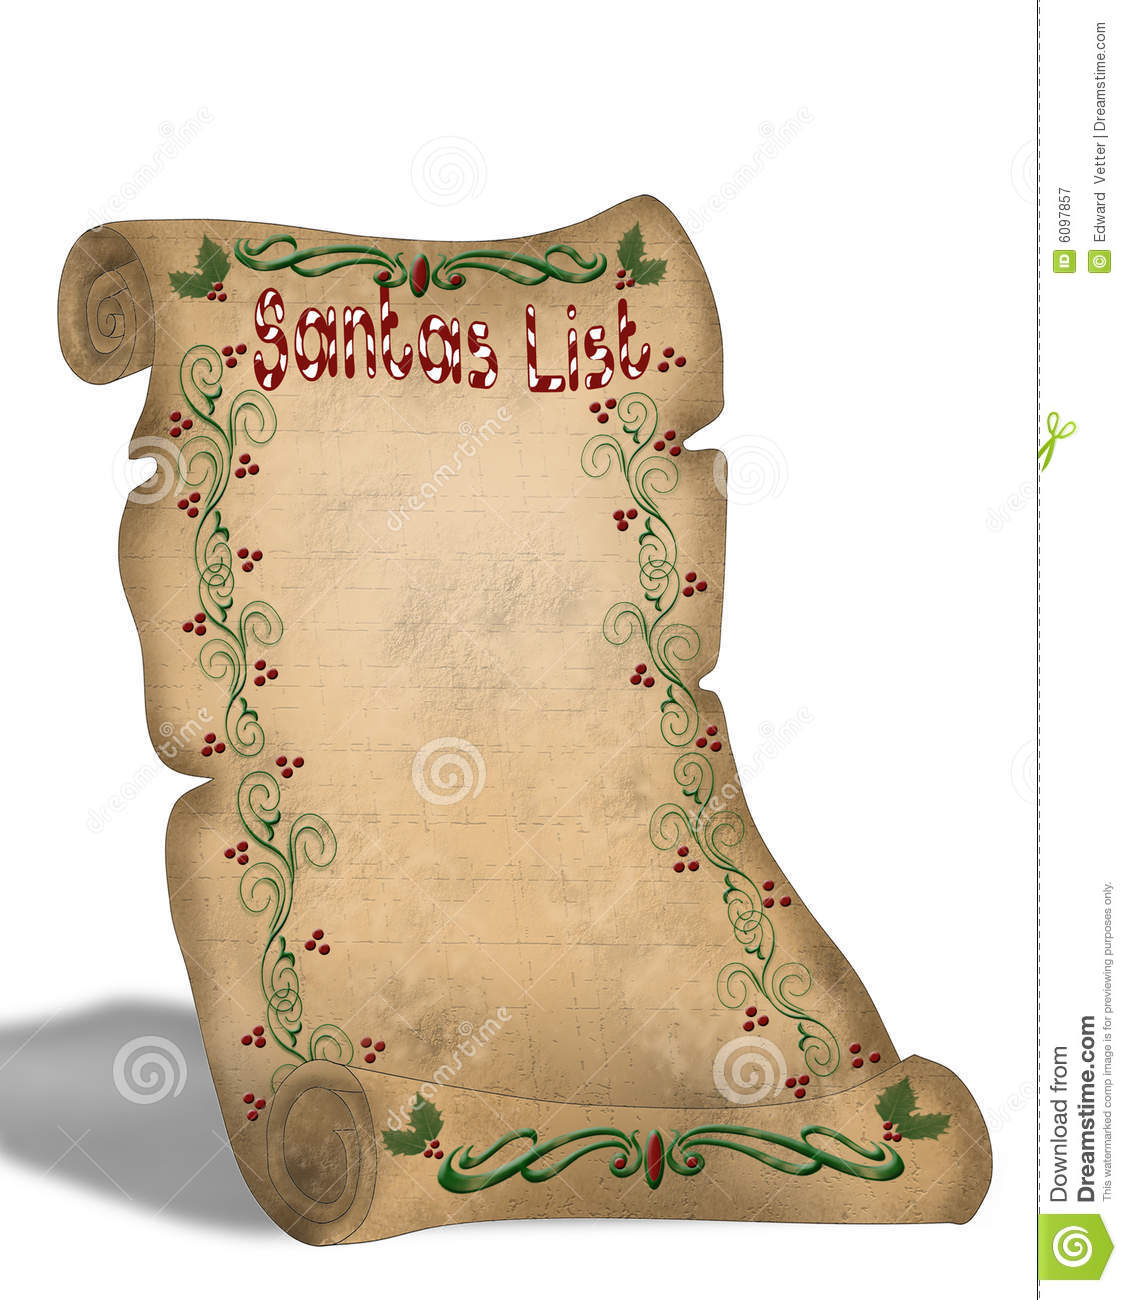 Santa's List On Old Parchment Scroll Stock Illustration ...